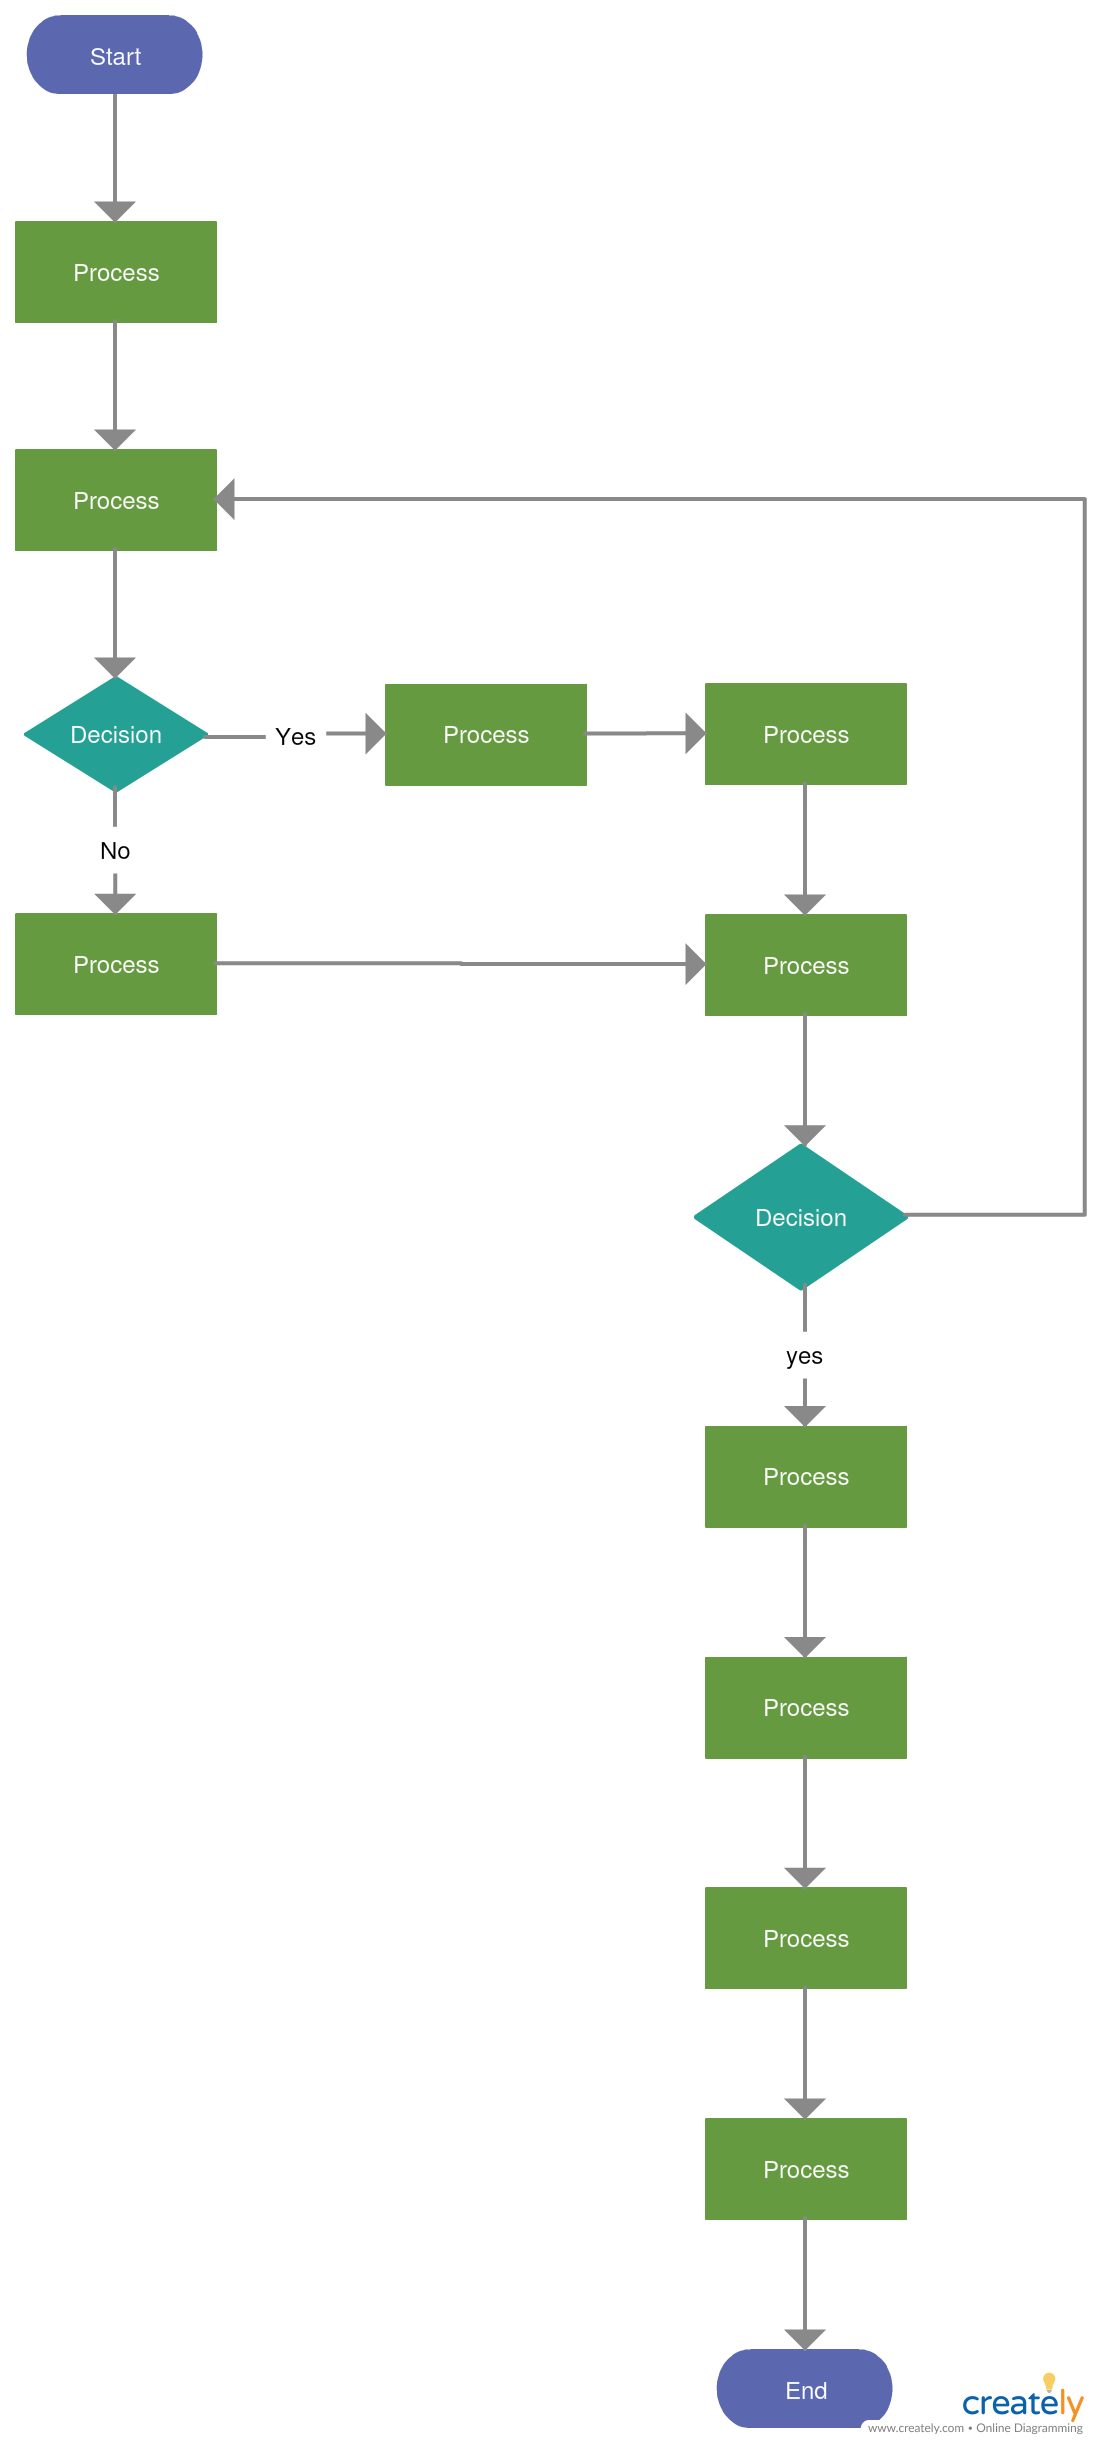 small resolution of vertical flowchart template editable online shopping flowchart to visualize your online shopping process flow and make improvements to them